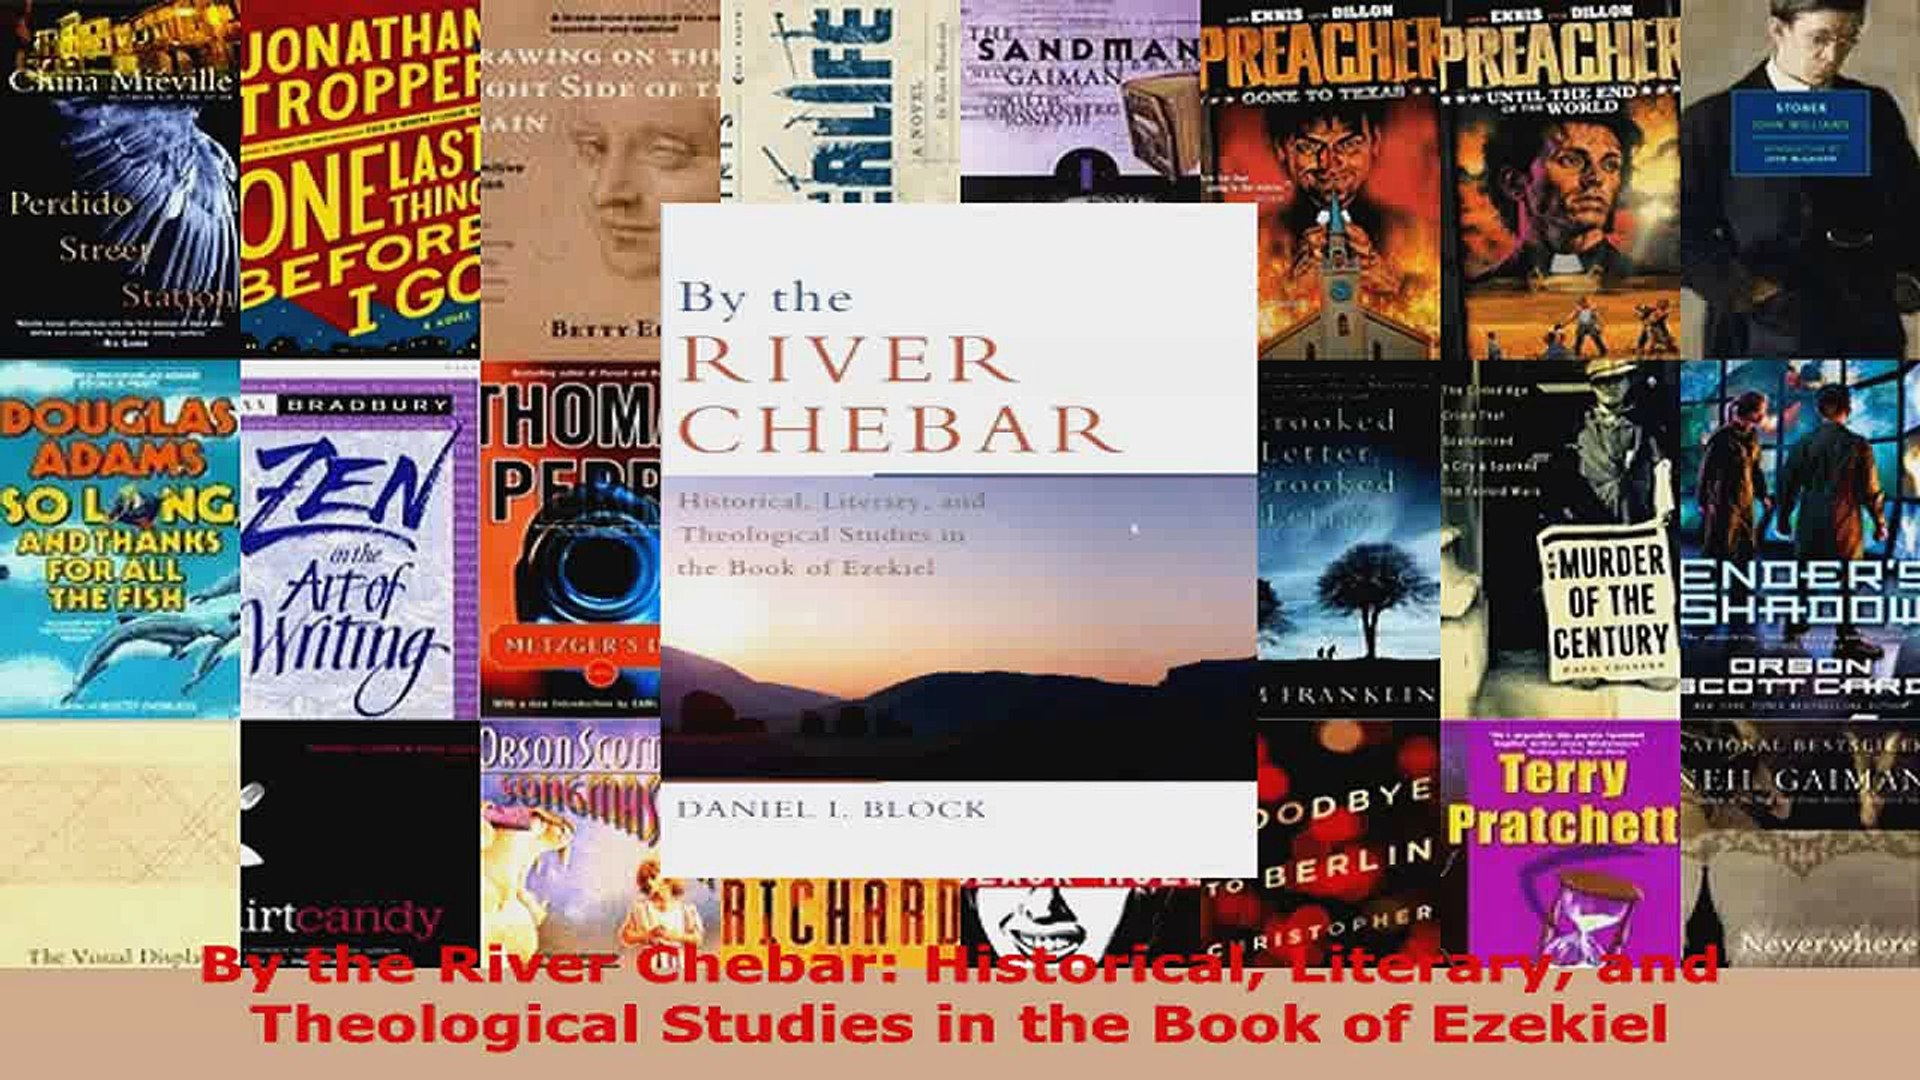 By the River Chebar: Historical, Literary, and Theological Studies in the Book of Ezekiel